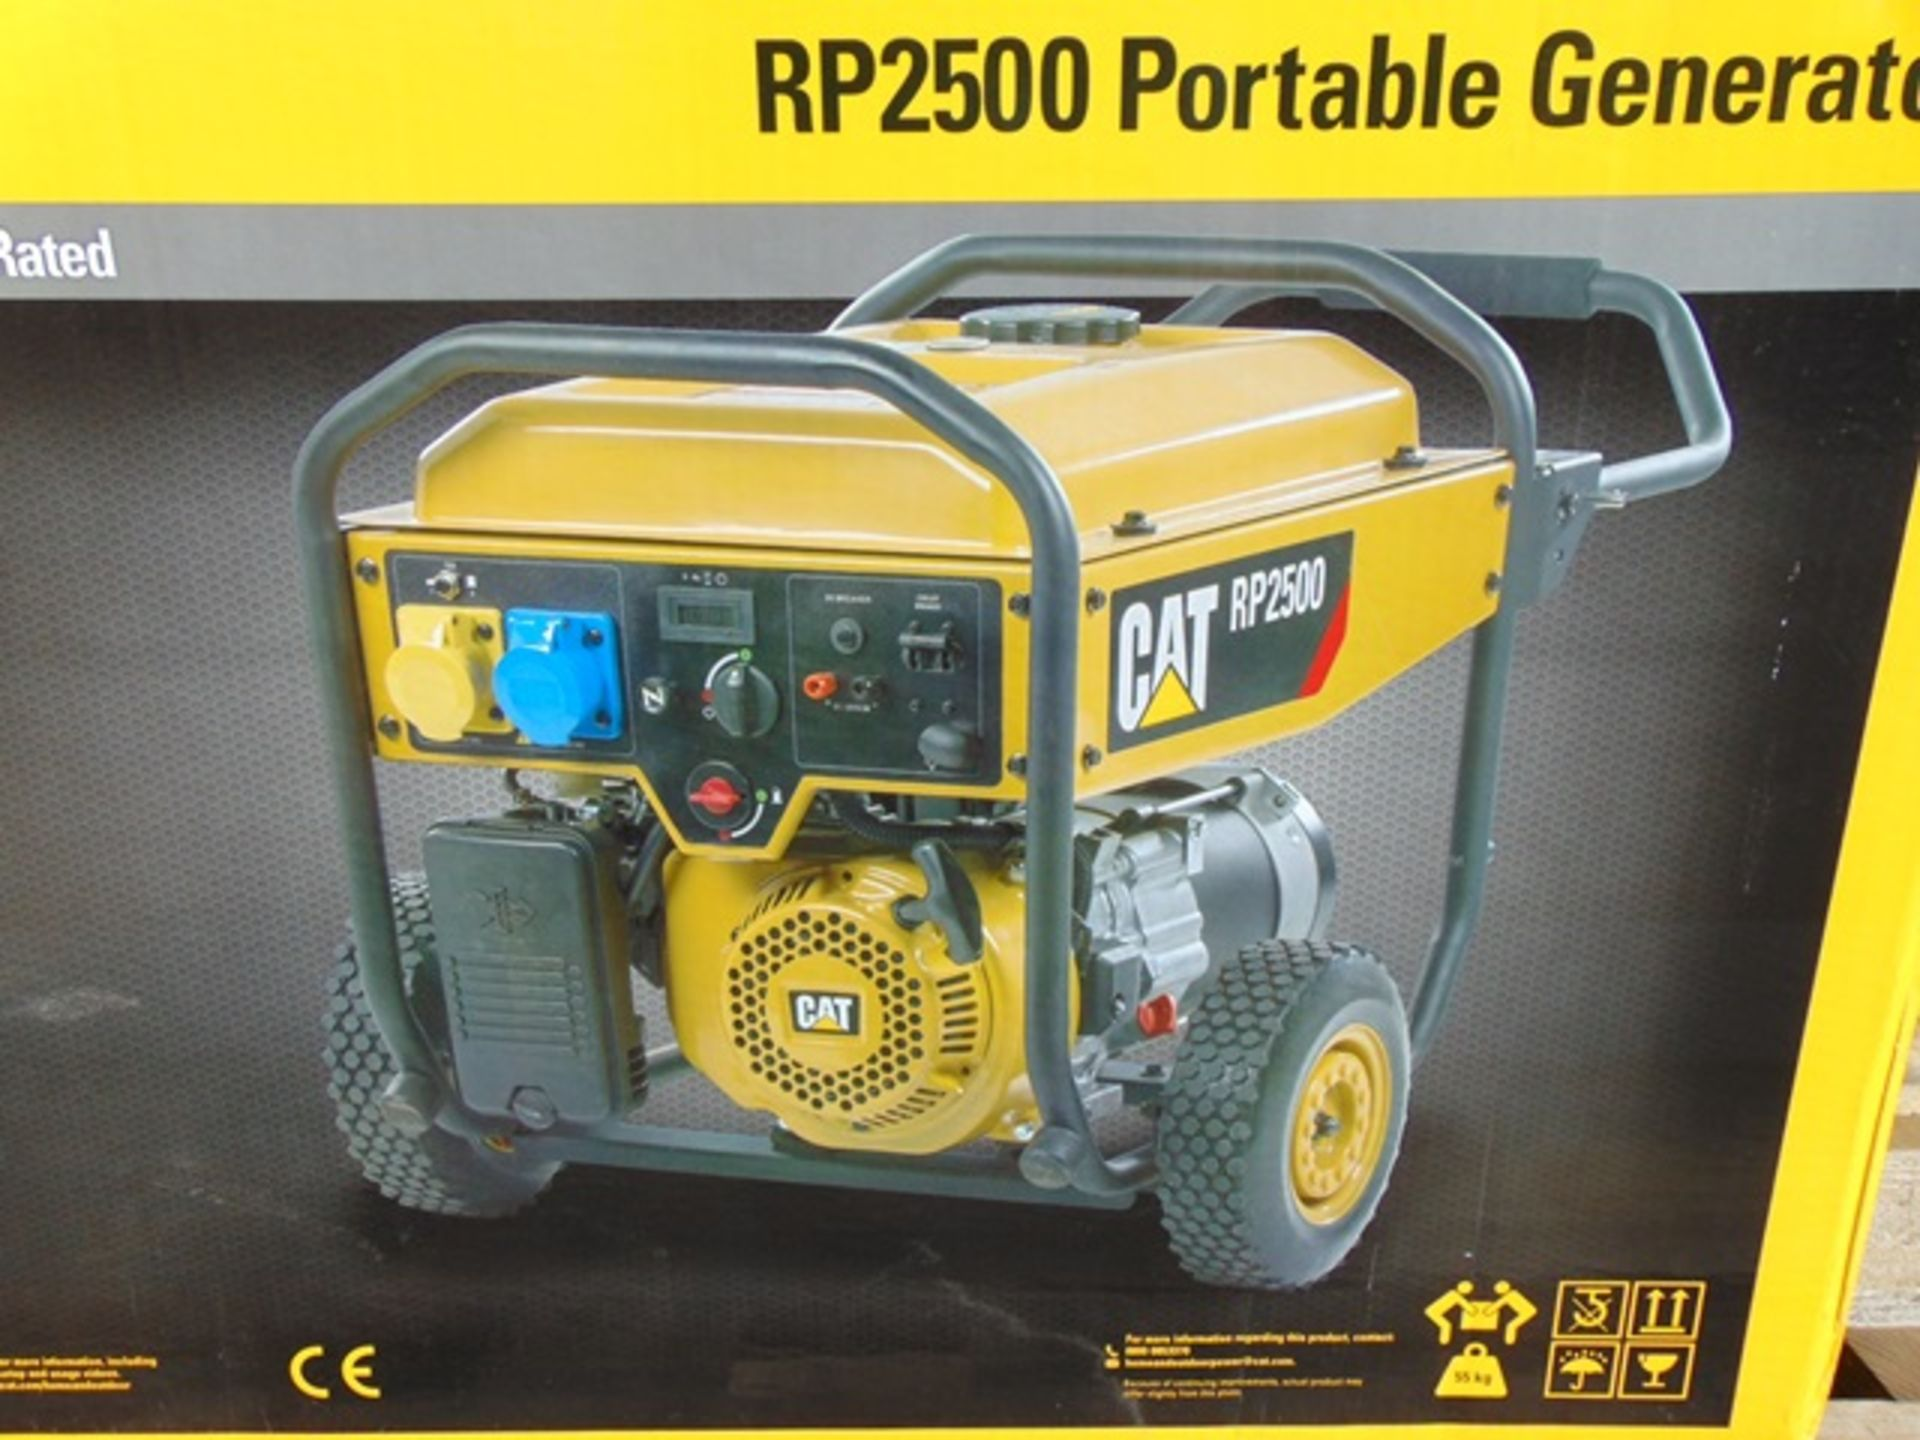 Lot 10 - UNISSUED Caterpillar RP2500 Industrial Petrol Generator Set